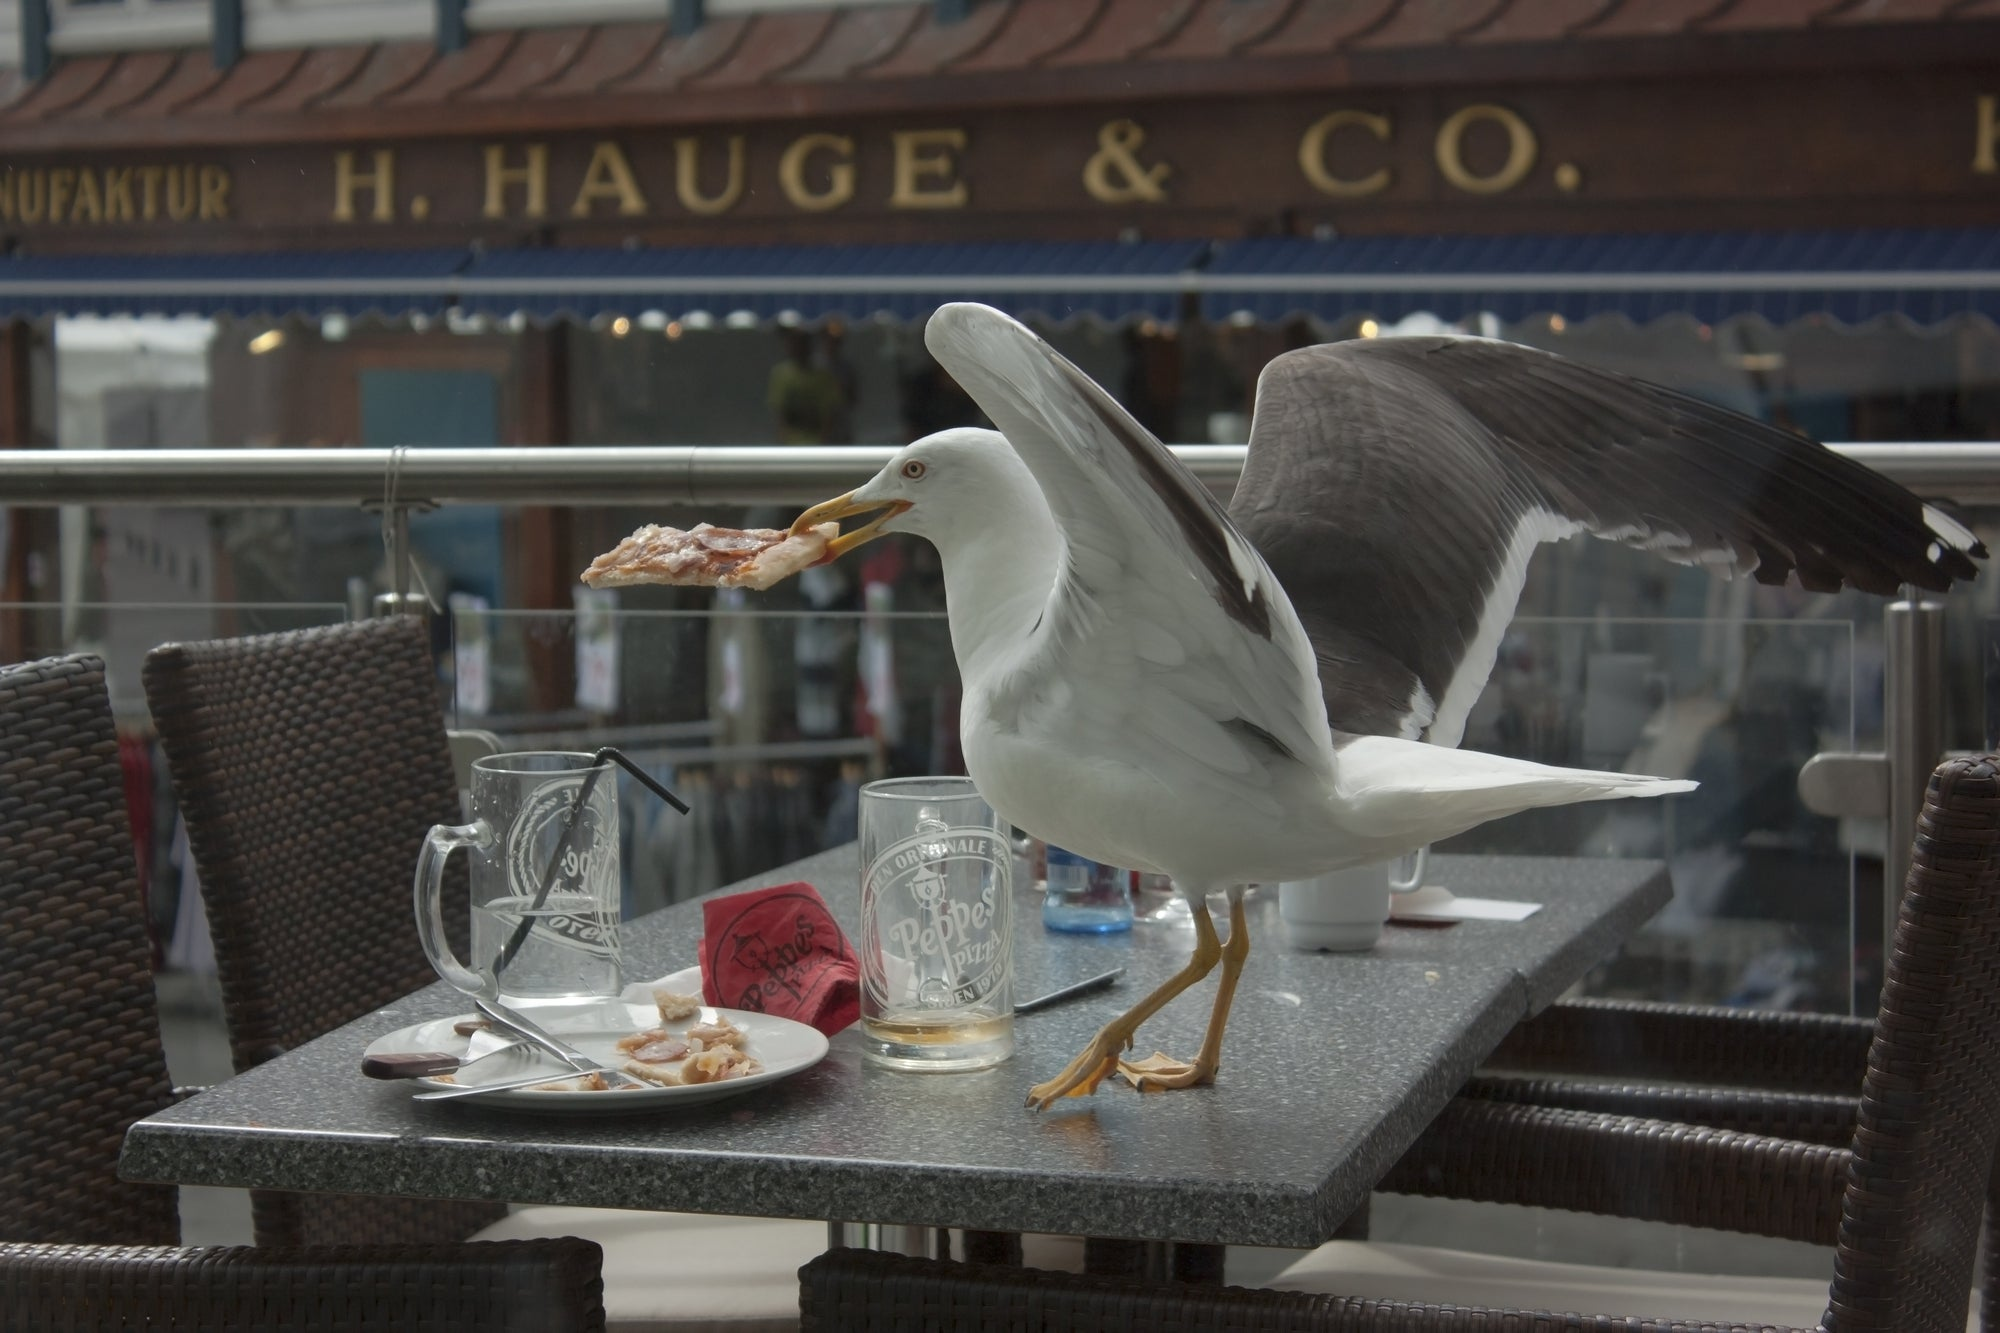 a seagull eating a piece of pizza on a restaurant table